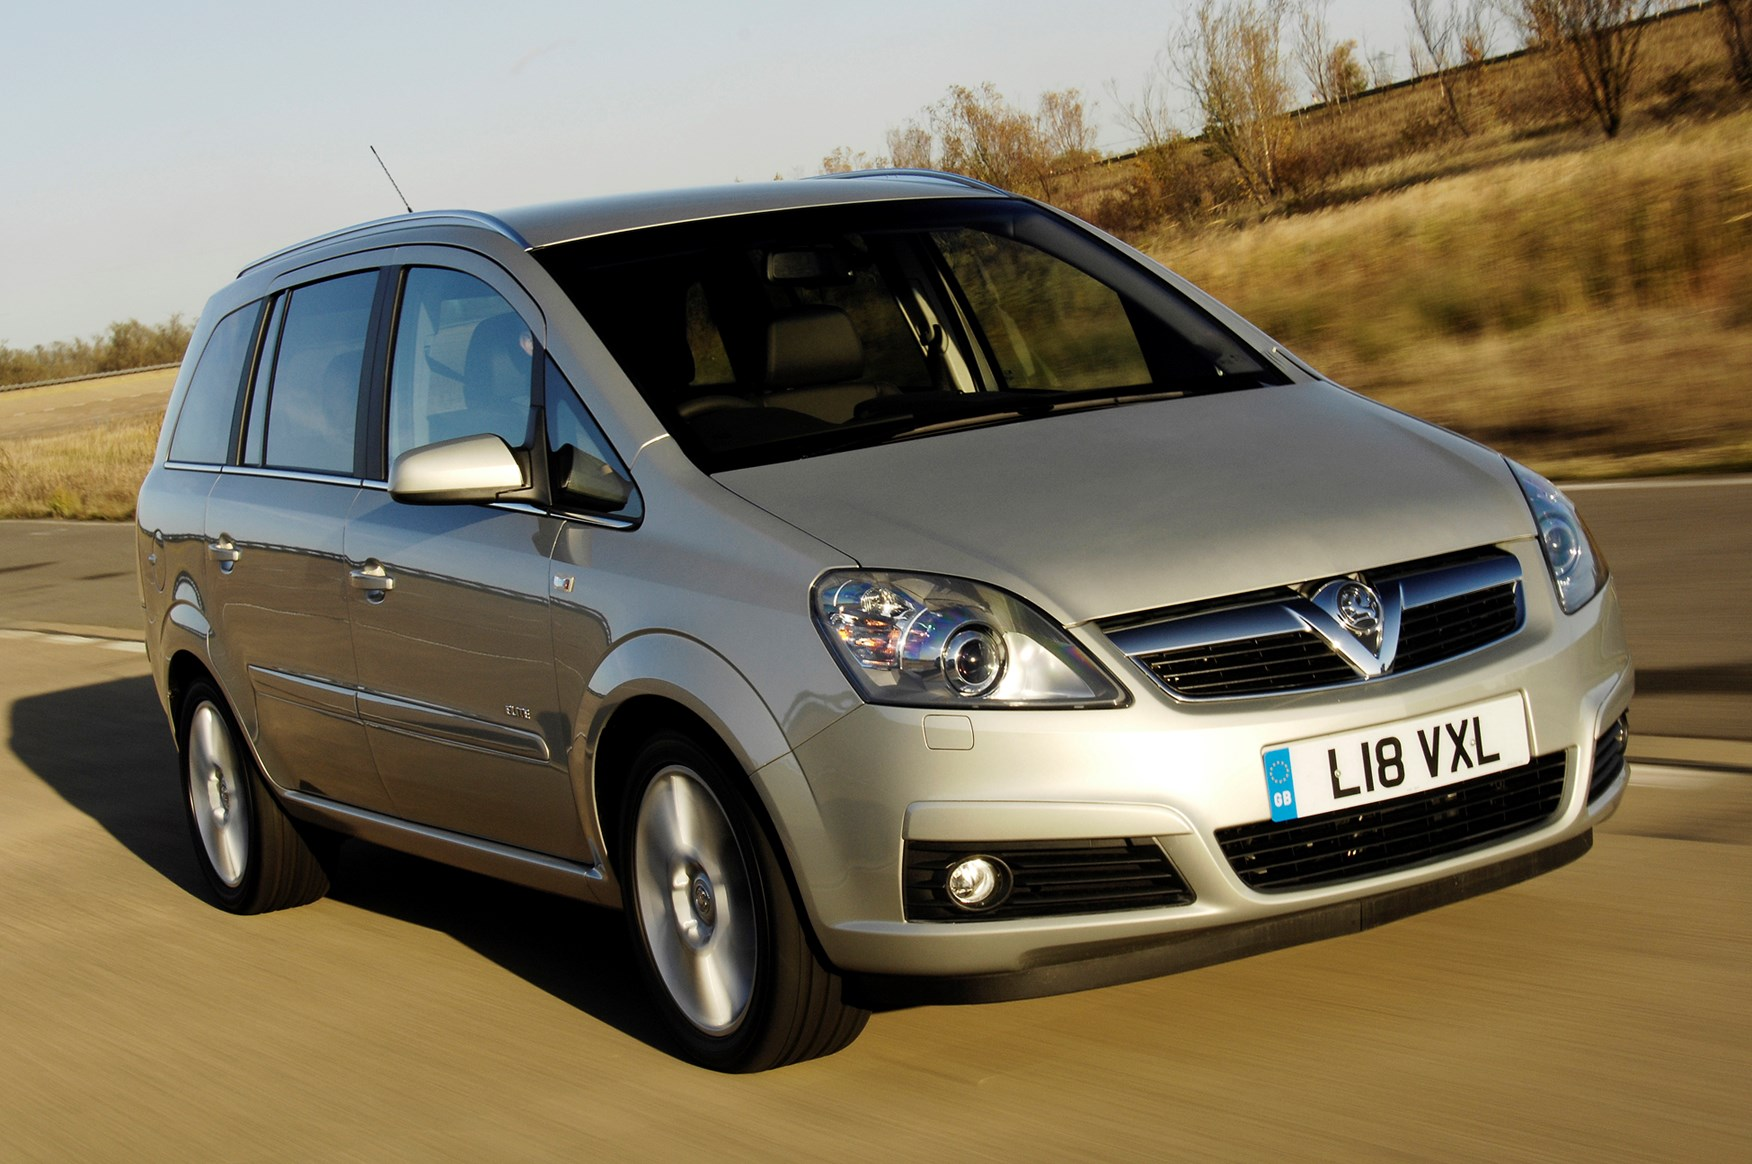 vauxhall zafira estate 2005 2014 photos parkers. Black Bedroom Furniture Sets. Home Design Ideas